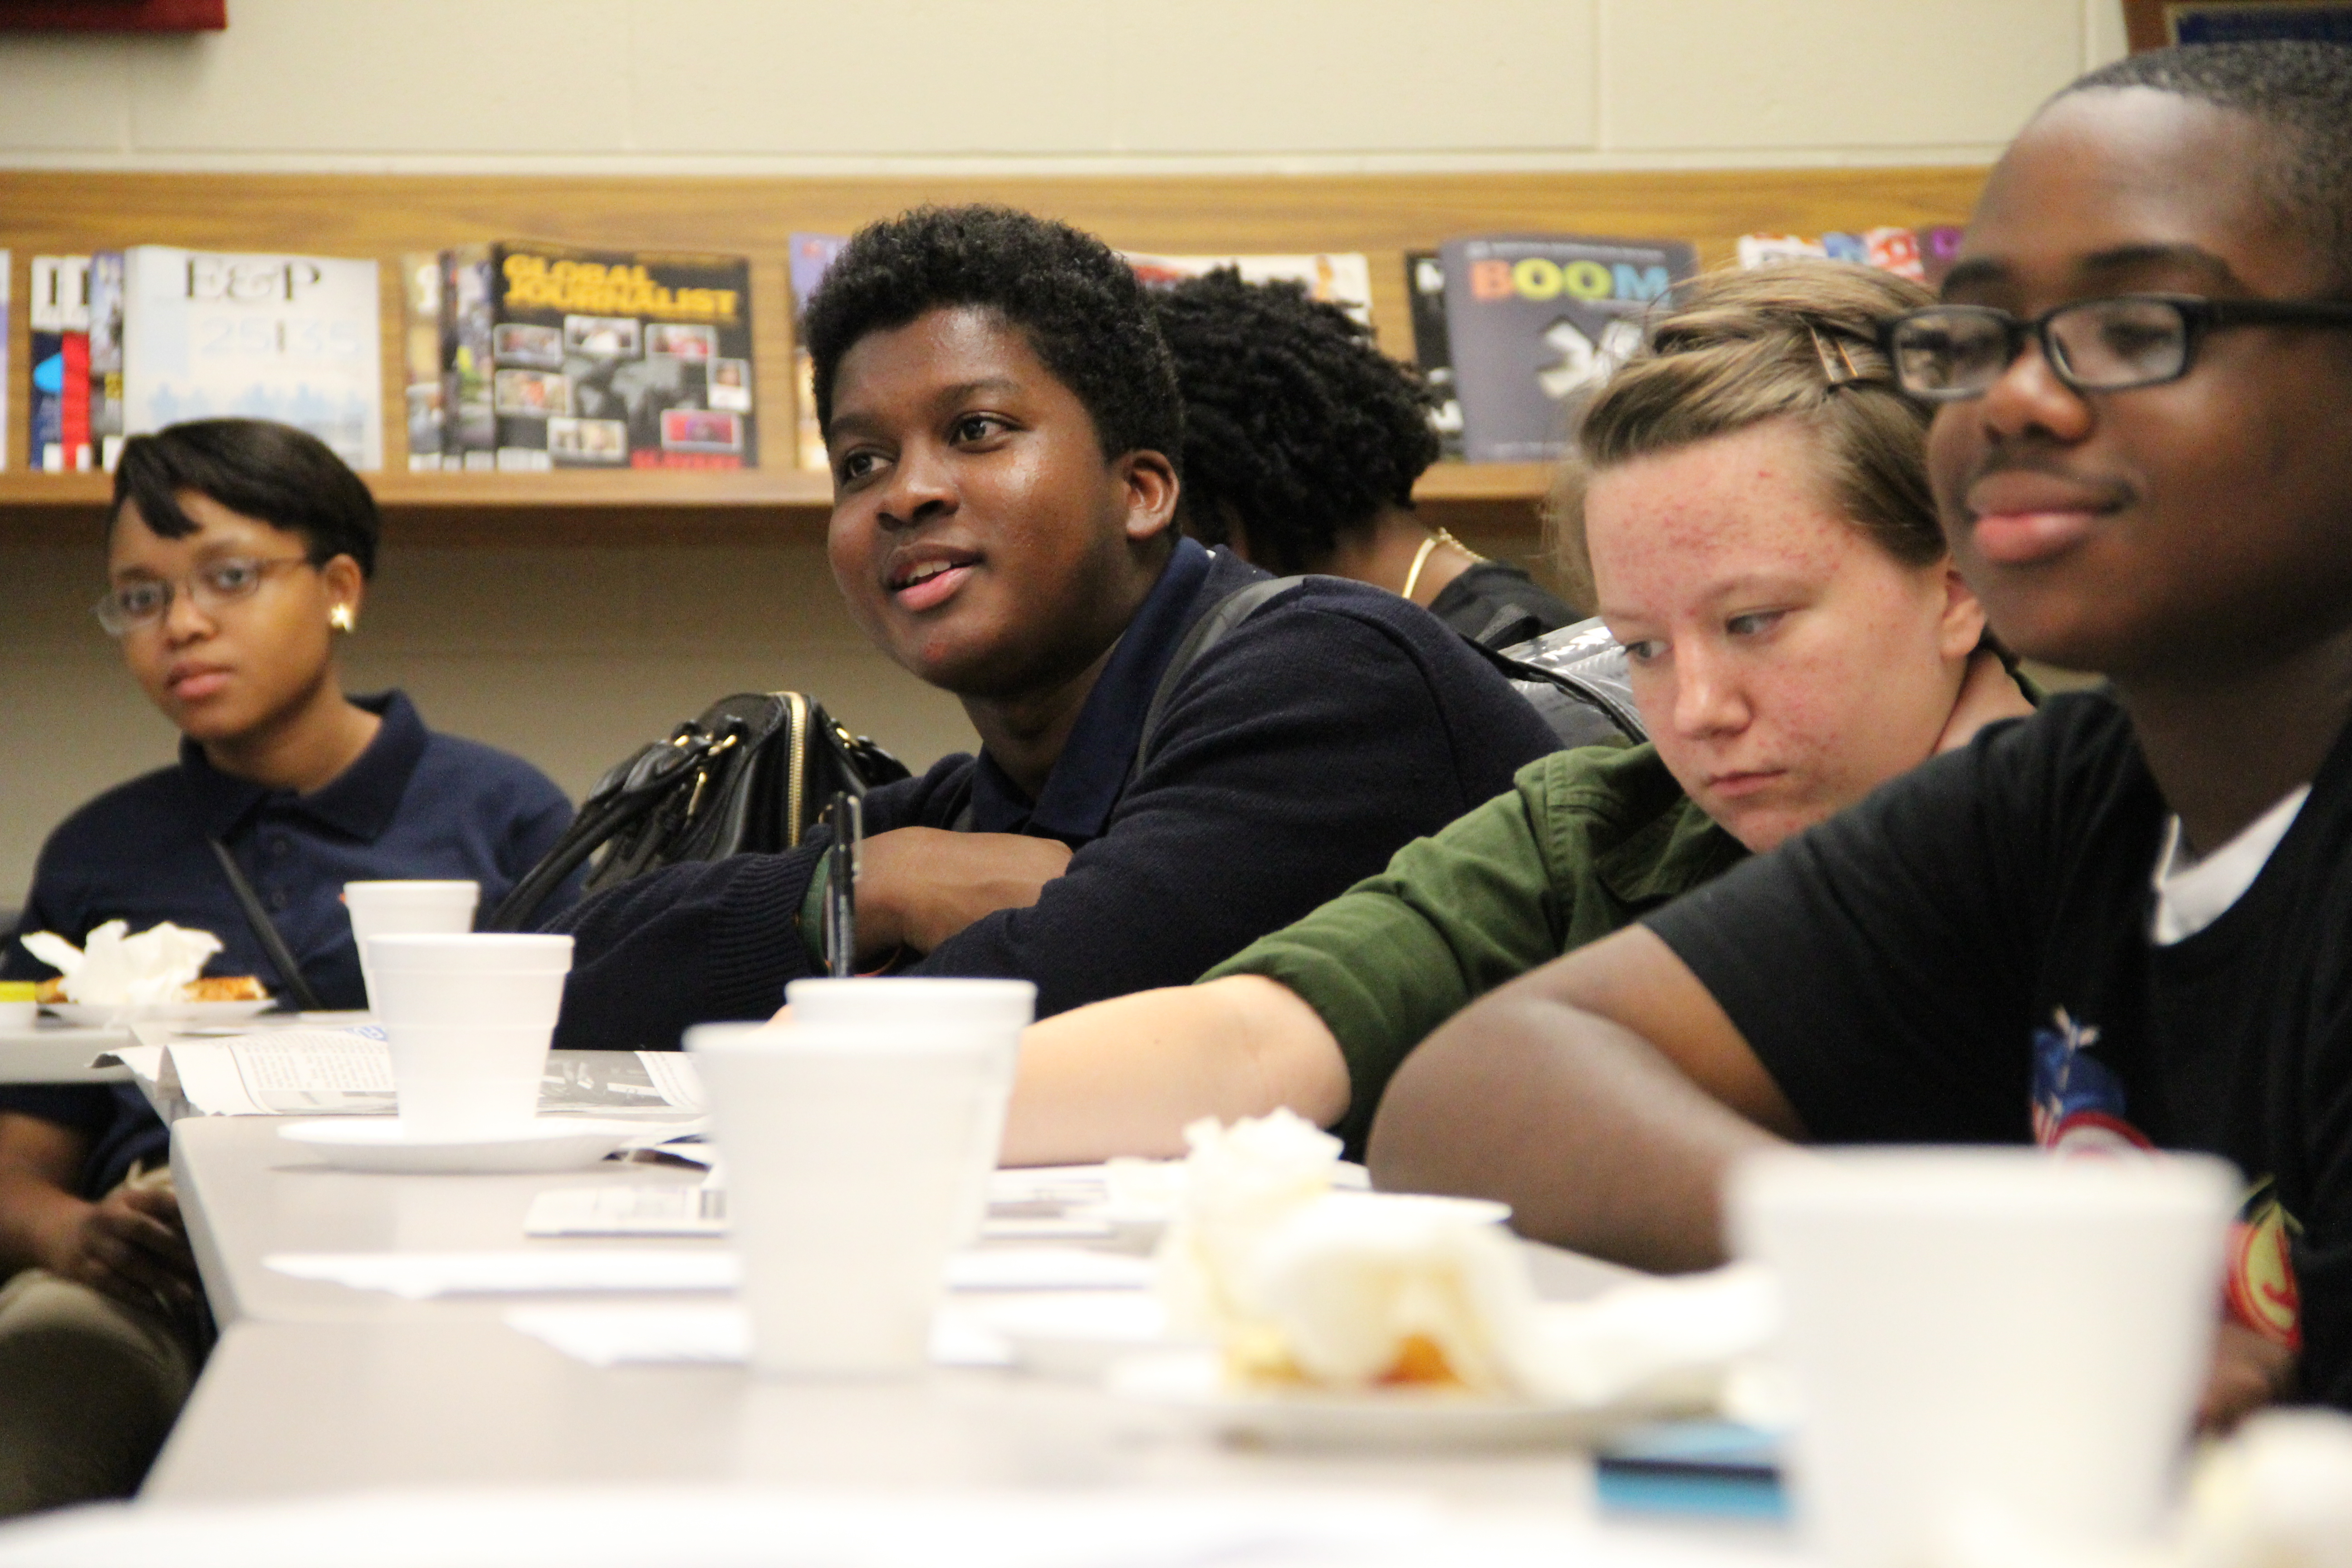 Students meet for their monthly editorial meeting on the University of Memphis campus.